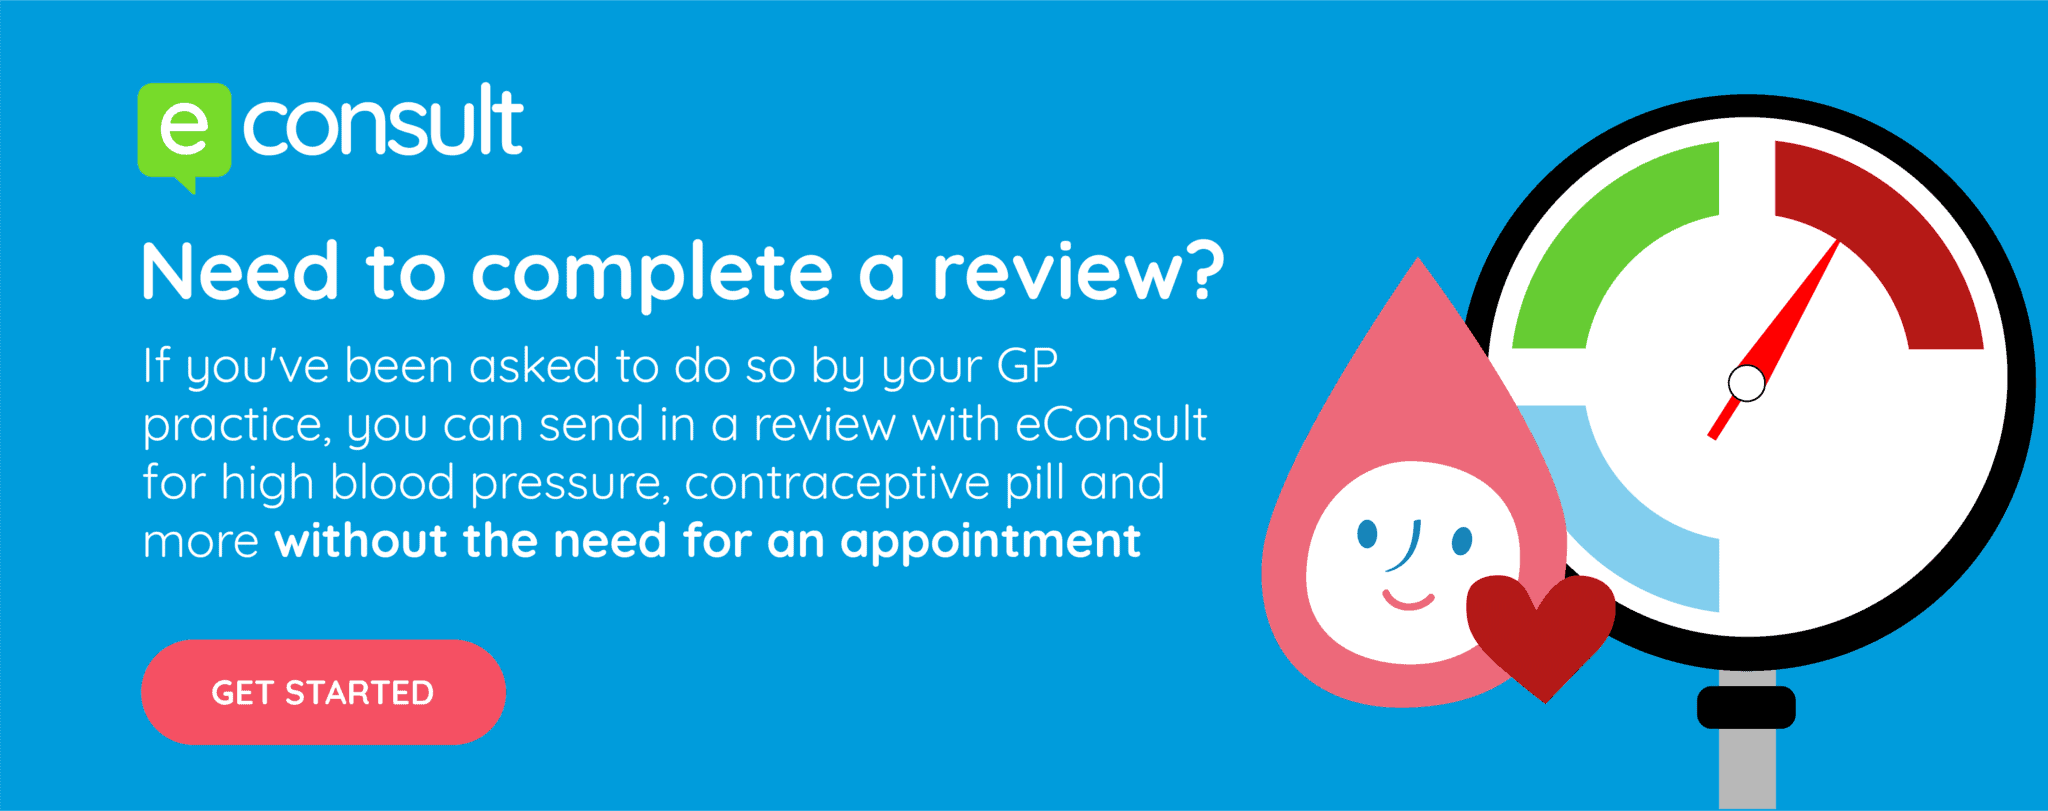 Need to complete a review?